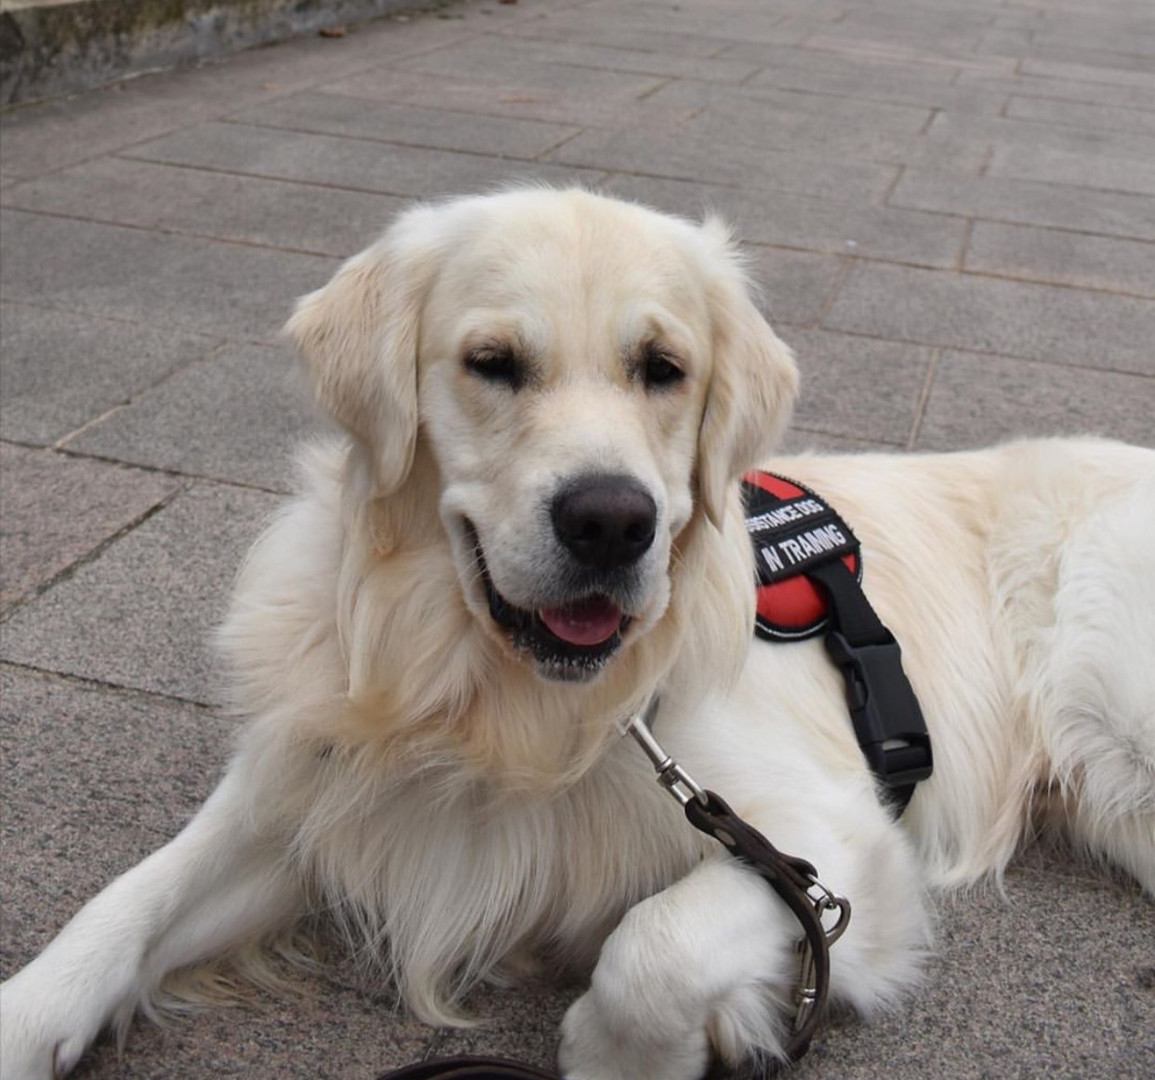 @jess_and_percy  Percy has been a member since June 2020 and is a adult golden retriever. His handlers favourite thing about him is his very expressive face especially when it comes to hotdog sausages.